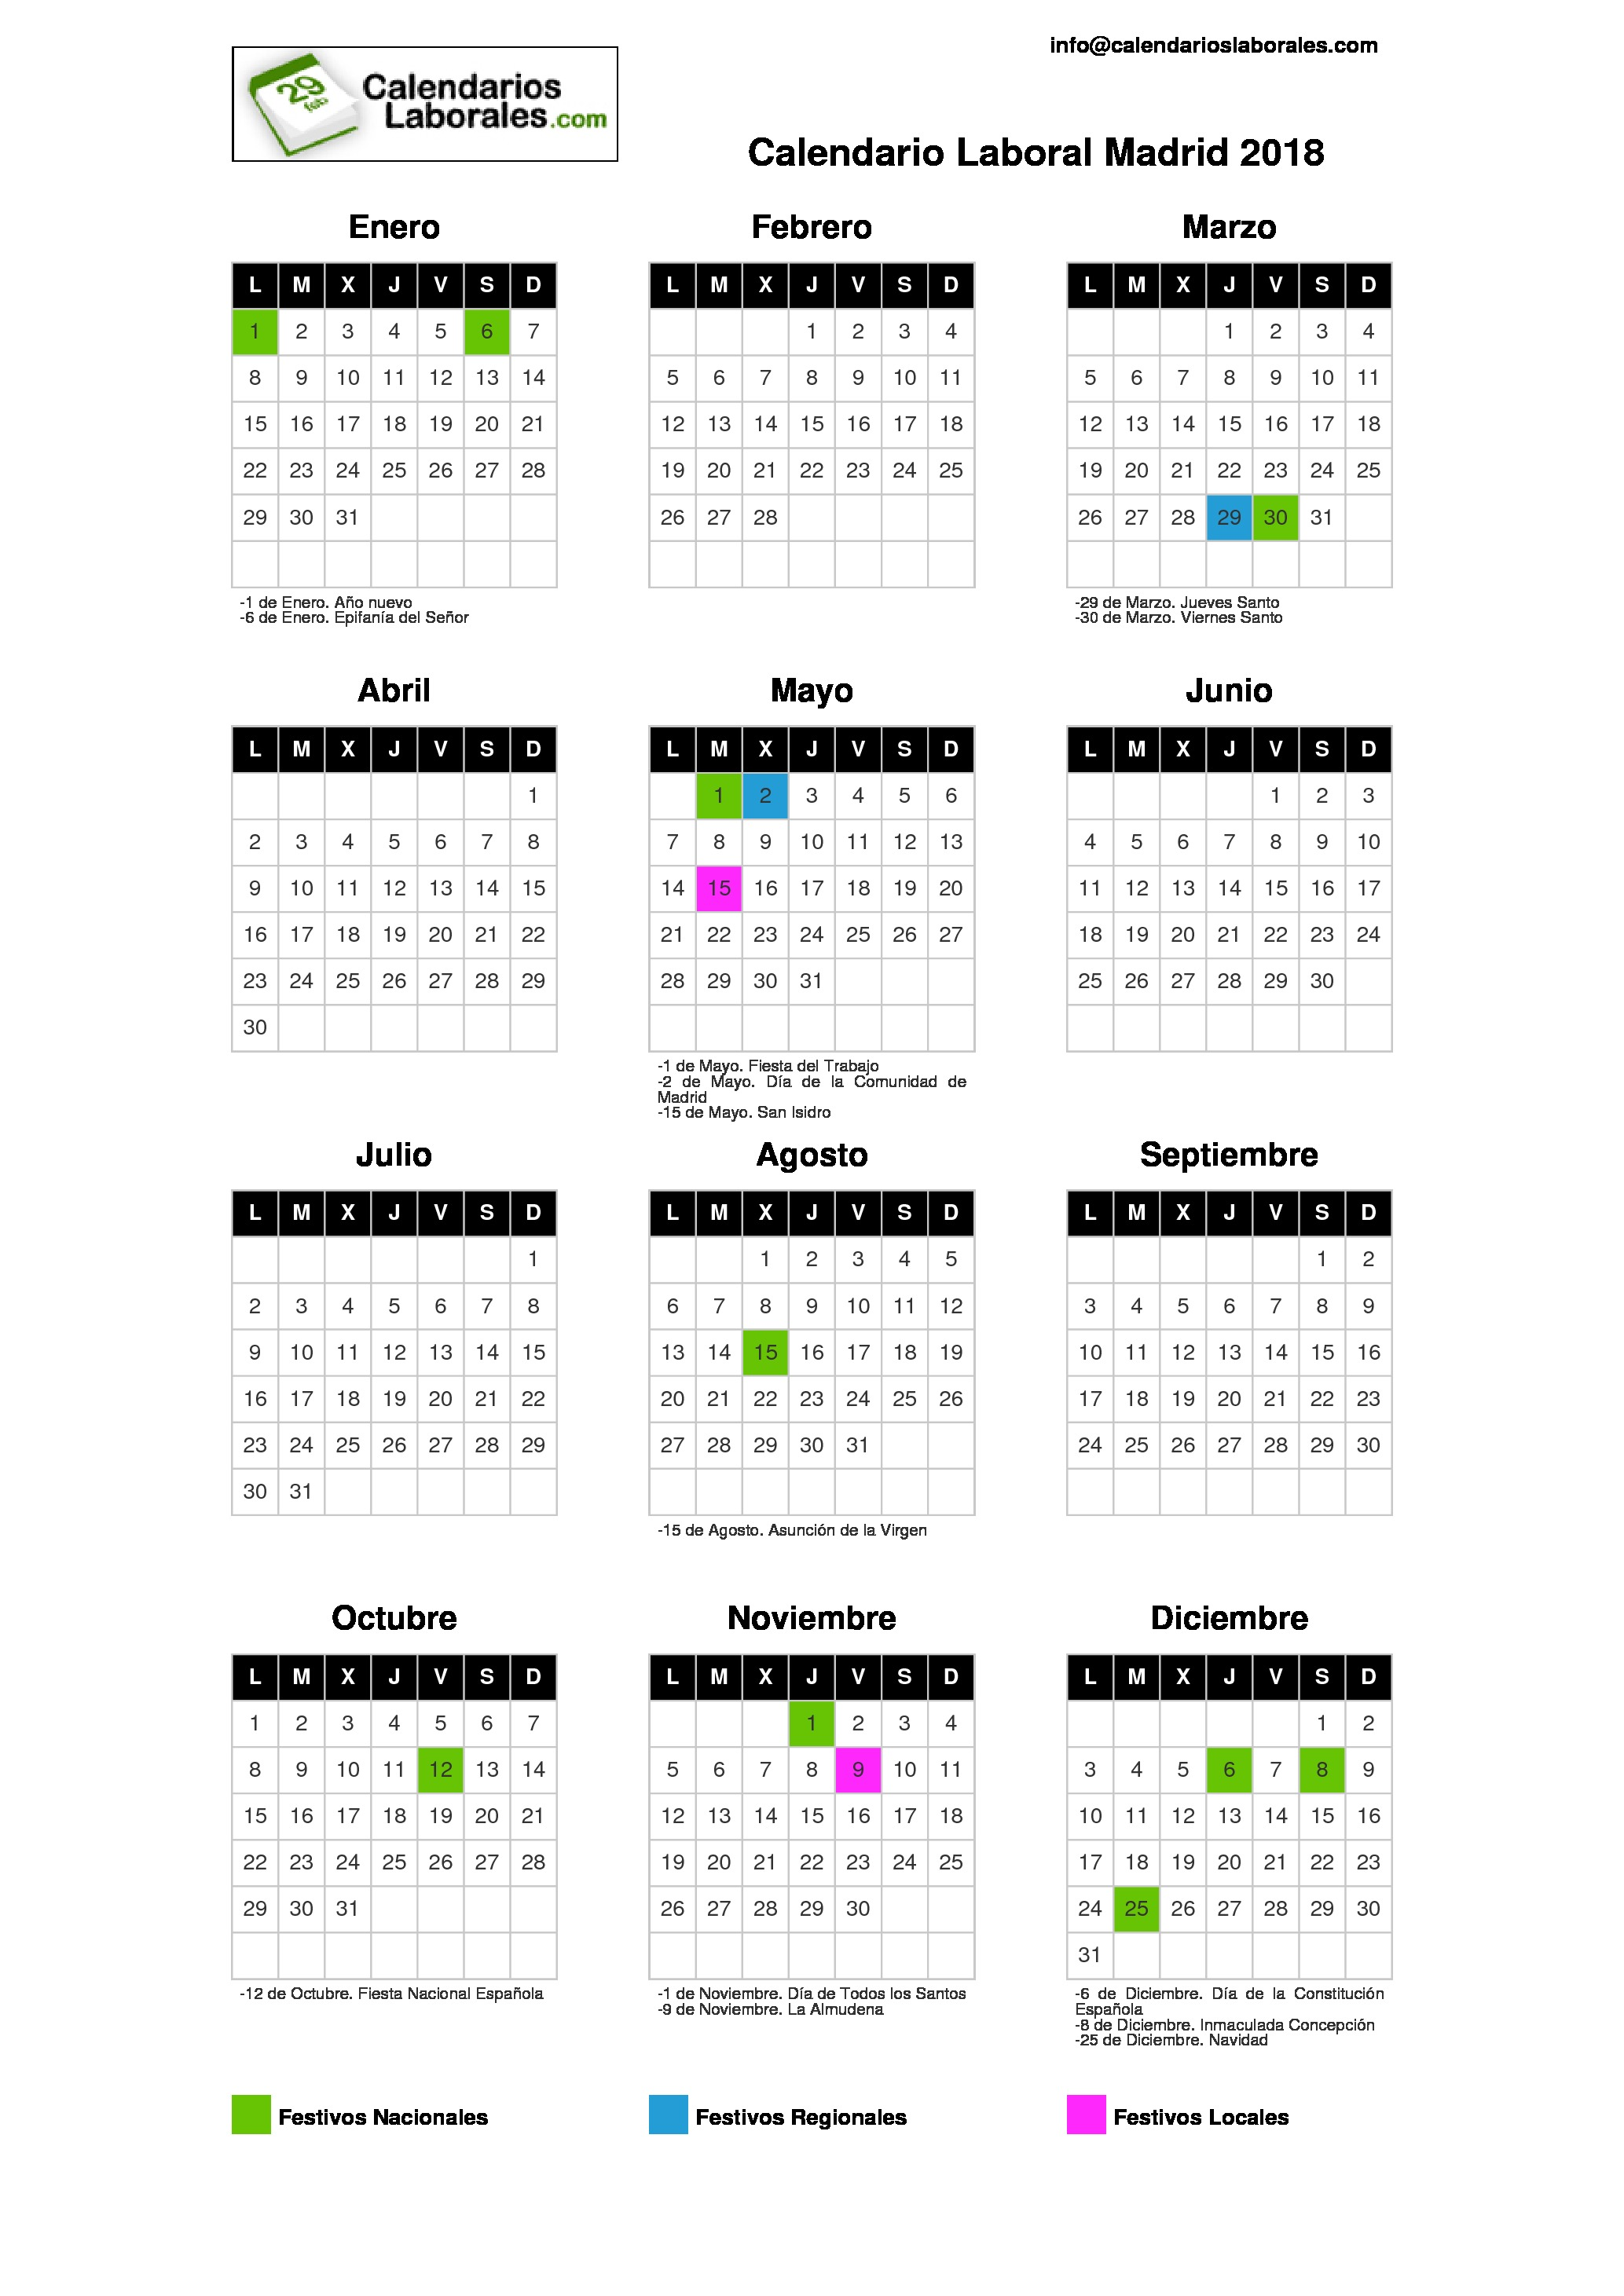 Calendario Laboral Madrid 2018